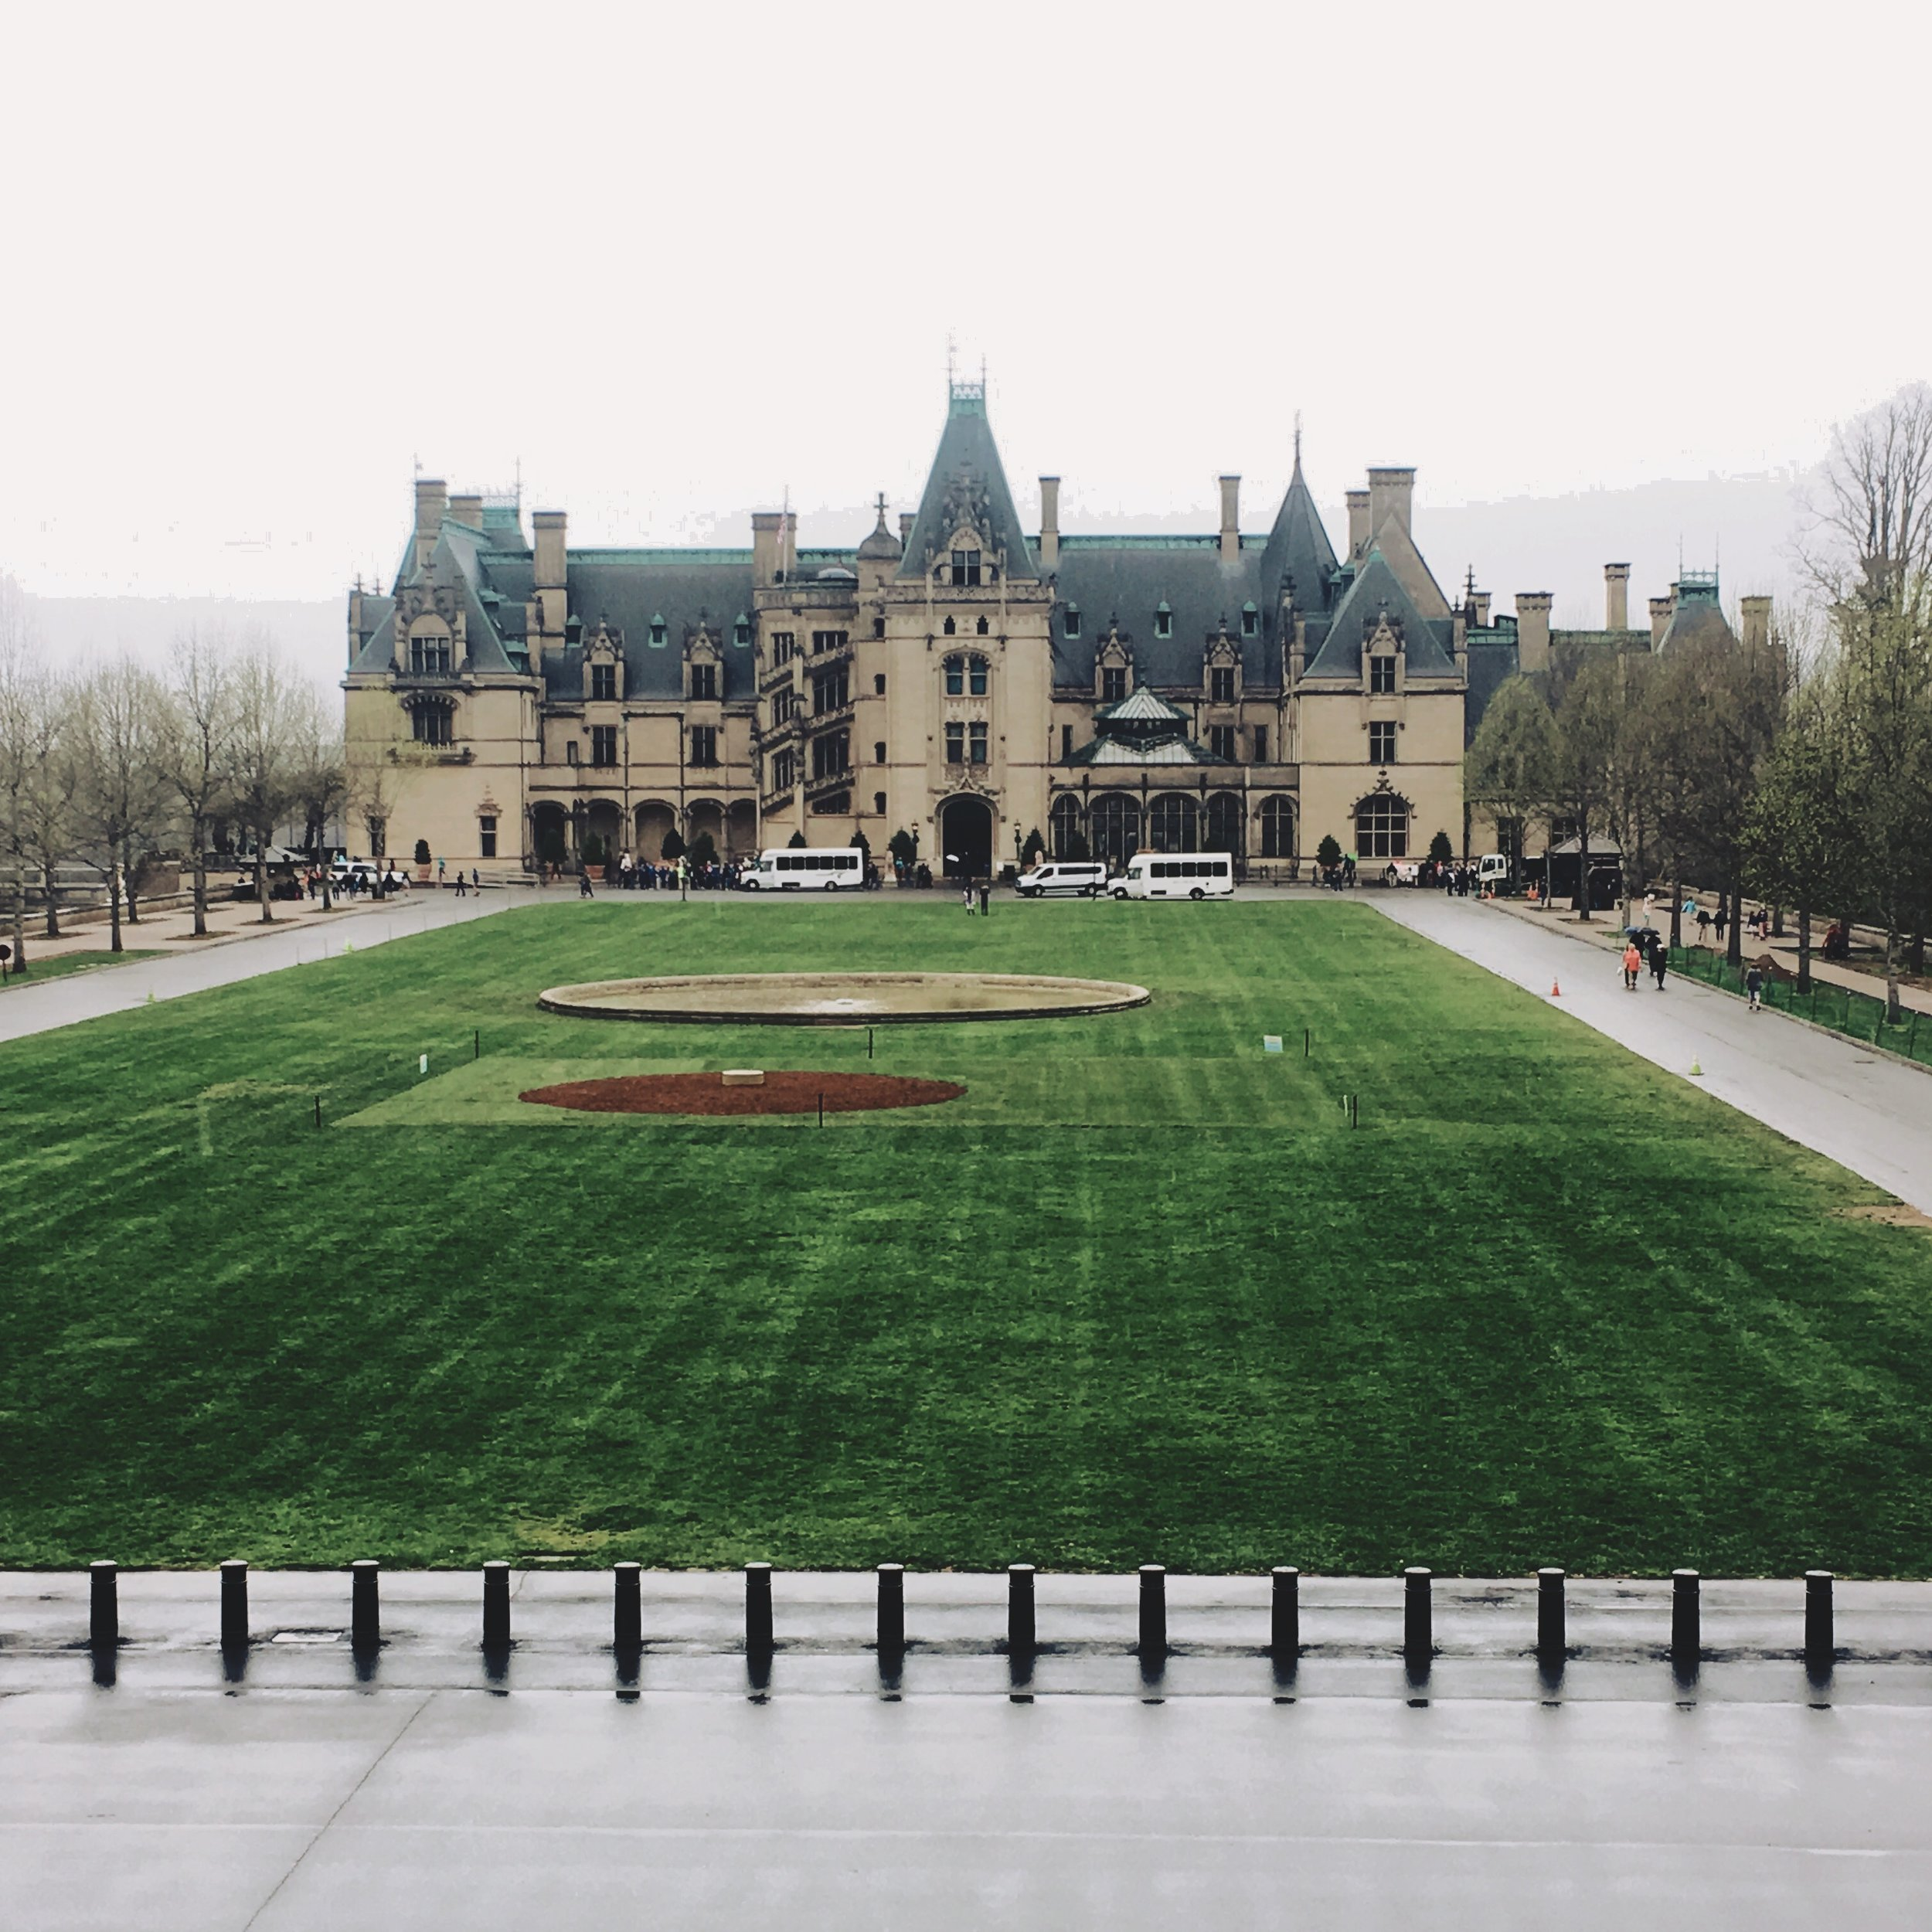 Biltmore from the Mezzanine